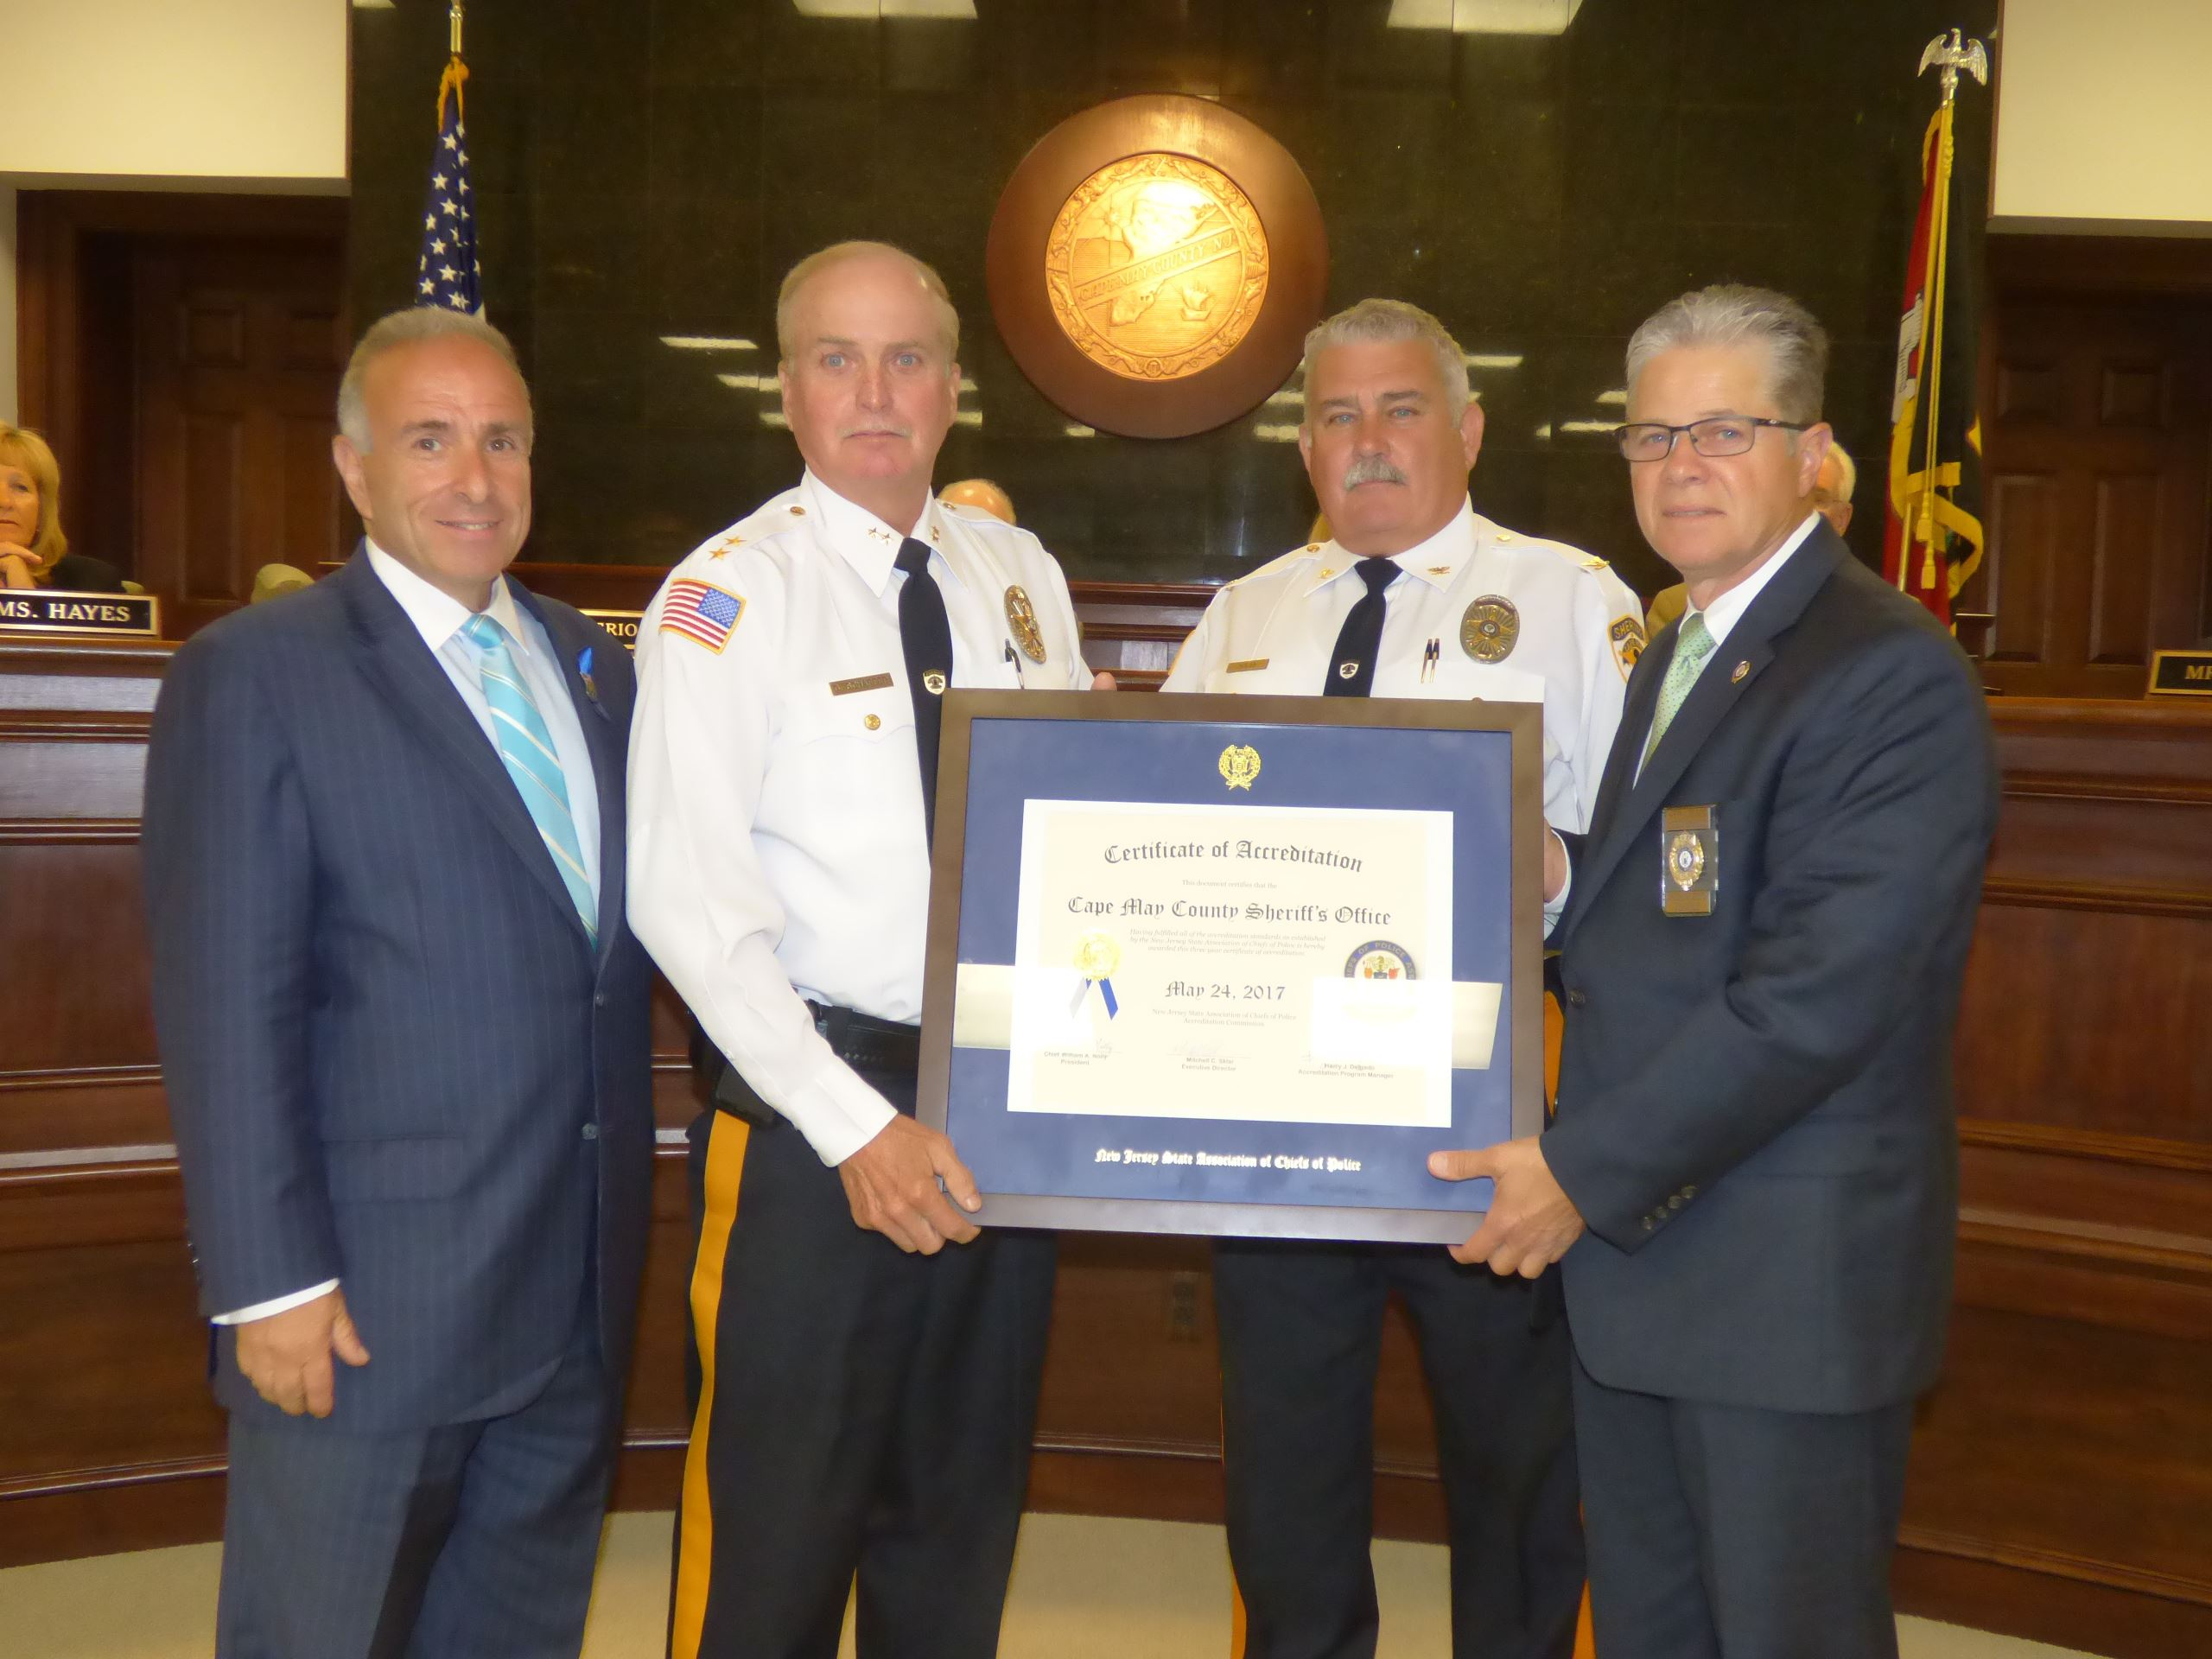 Photo: Sheriff's Office Receives Re-Accreditation Certificate 1